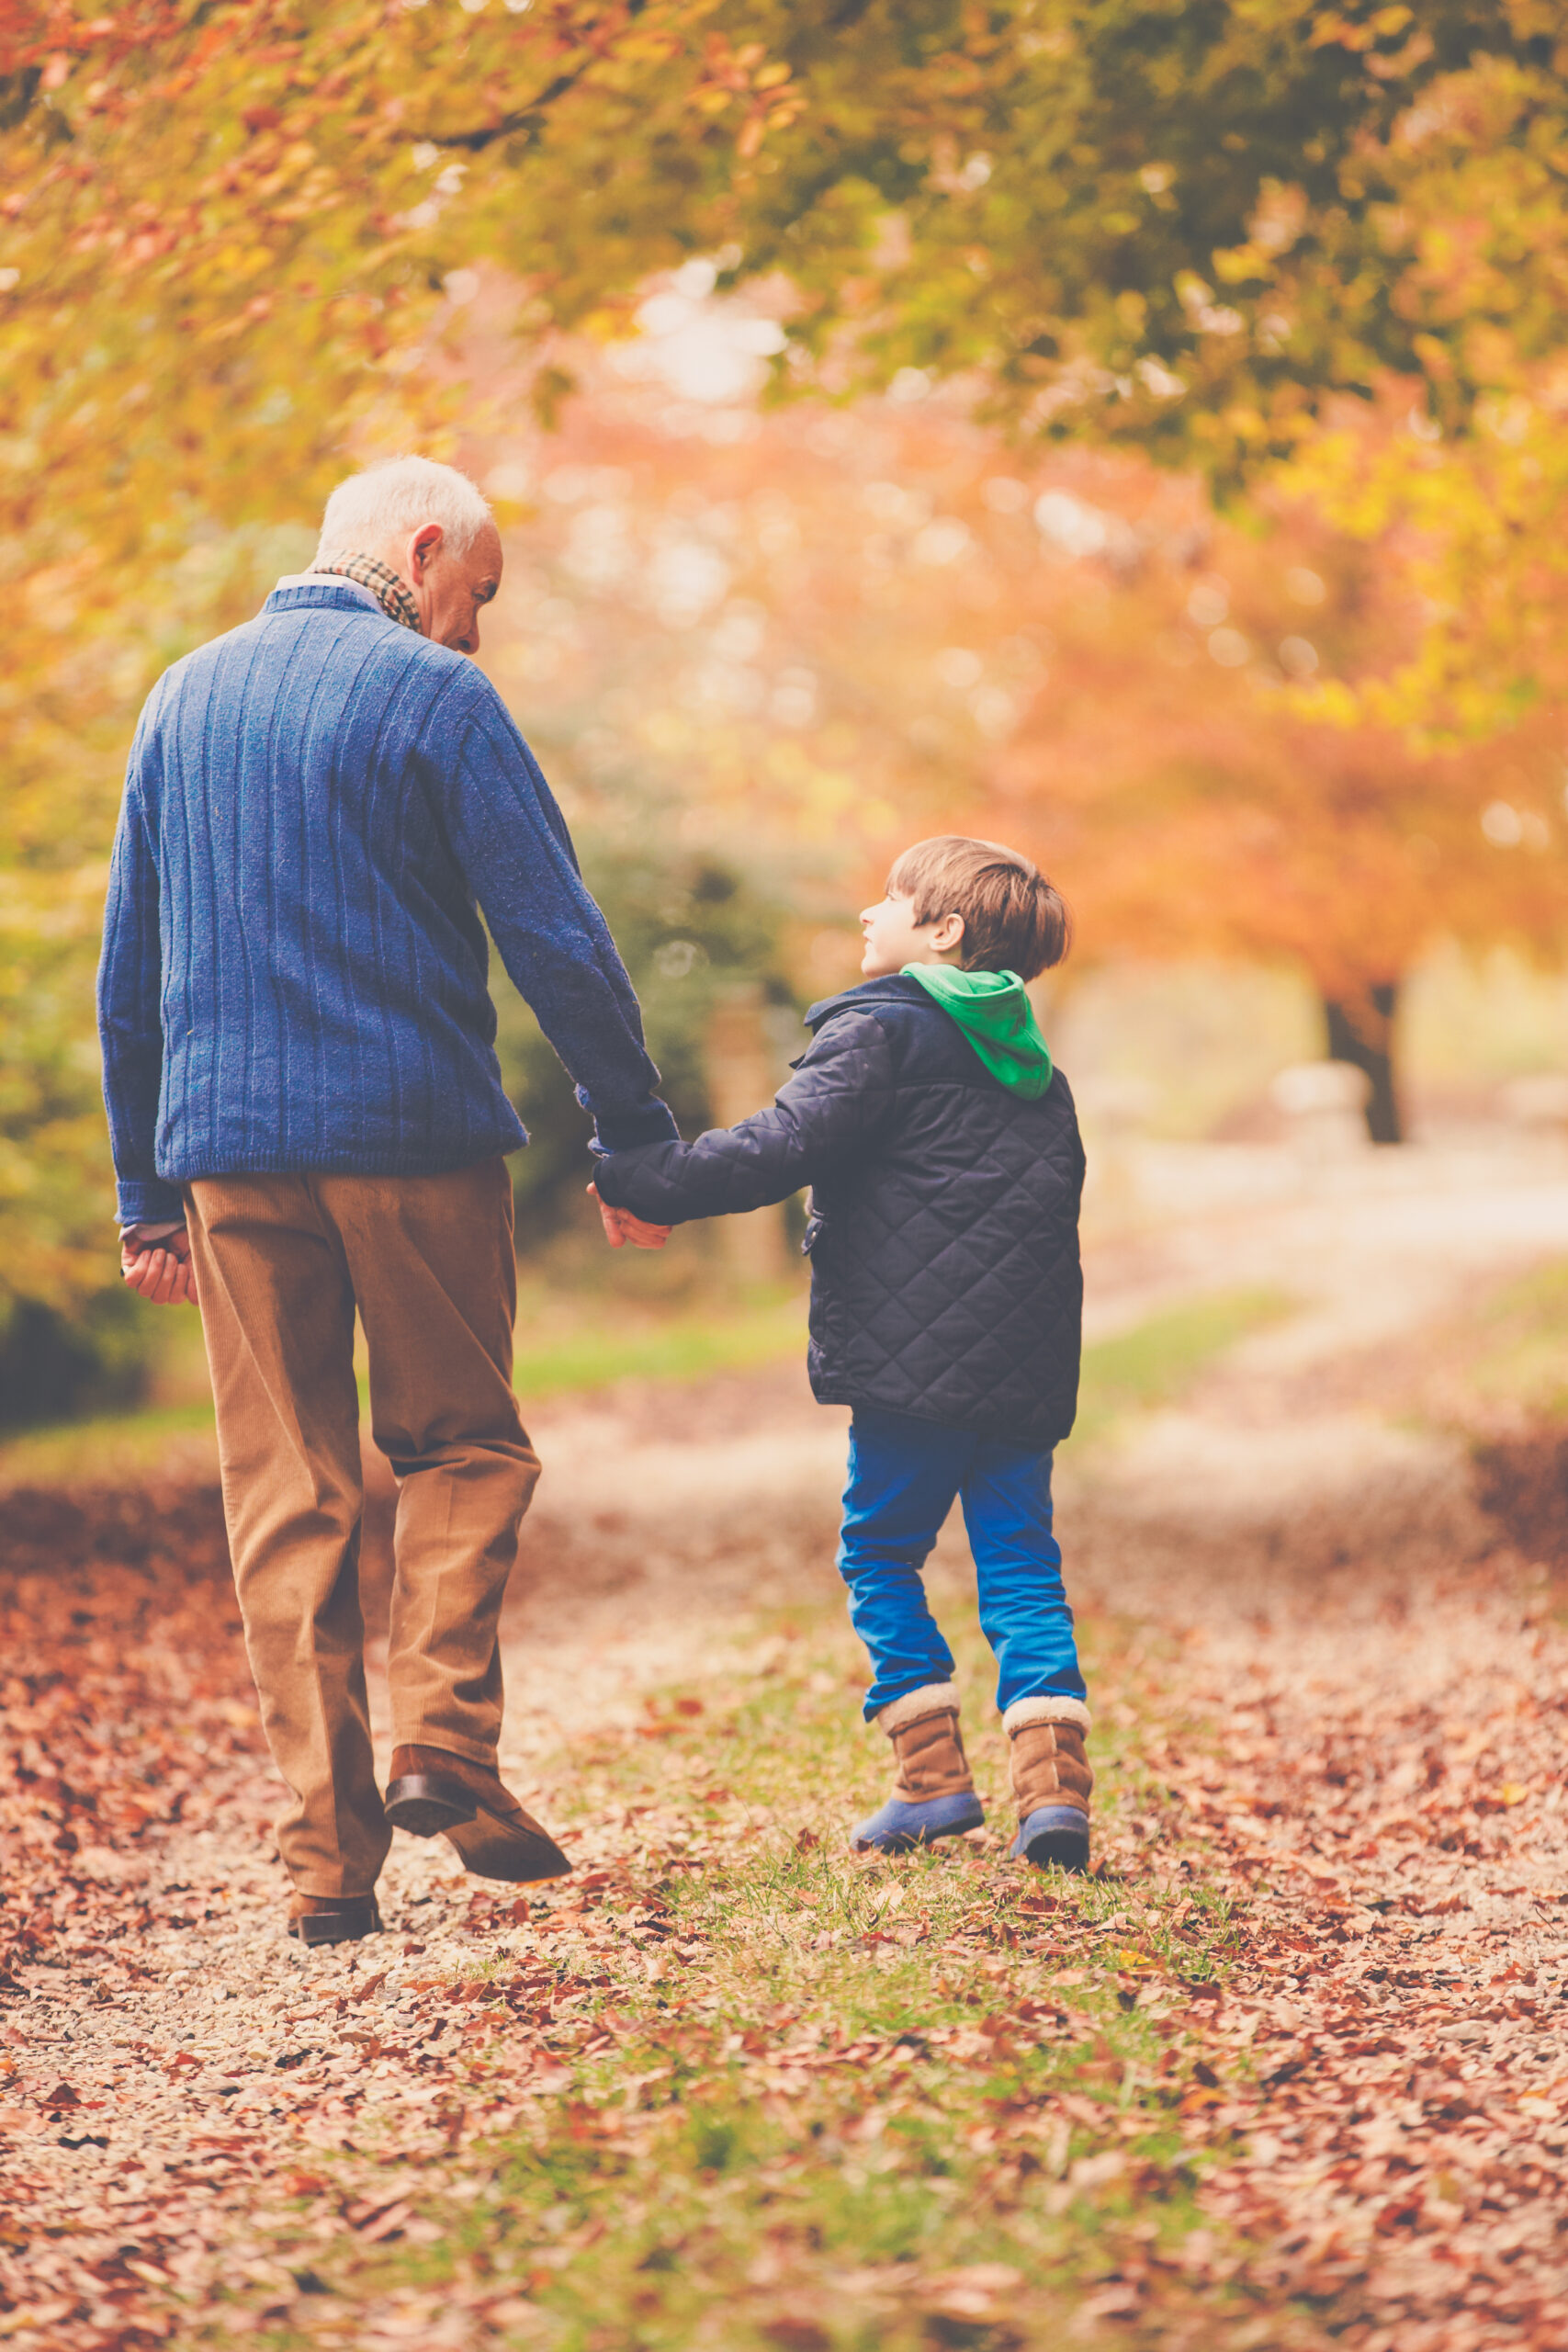 Rear View Of Grandfather And Grandson Walking Along Path Holding Hands Looking At Each Other Family Love Outdoor Caption